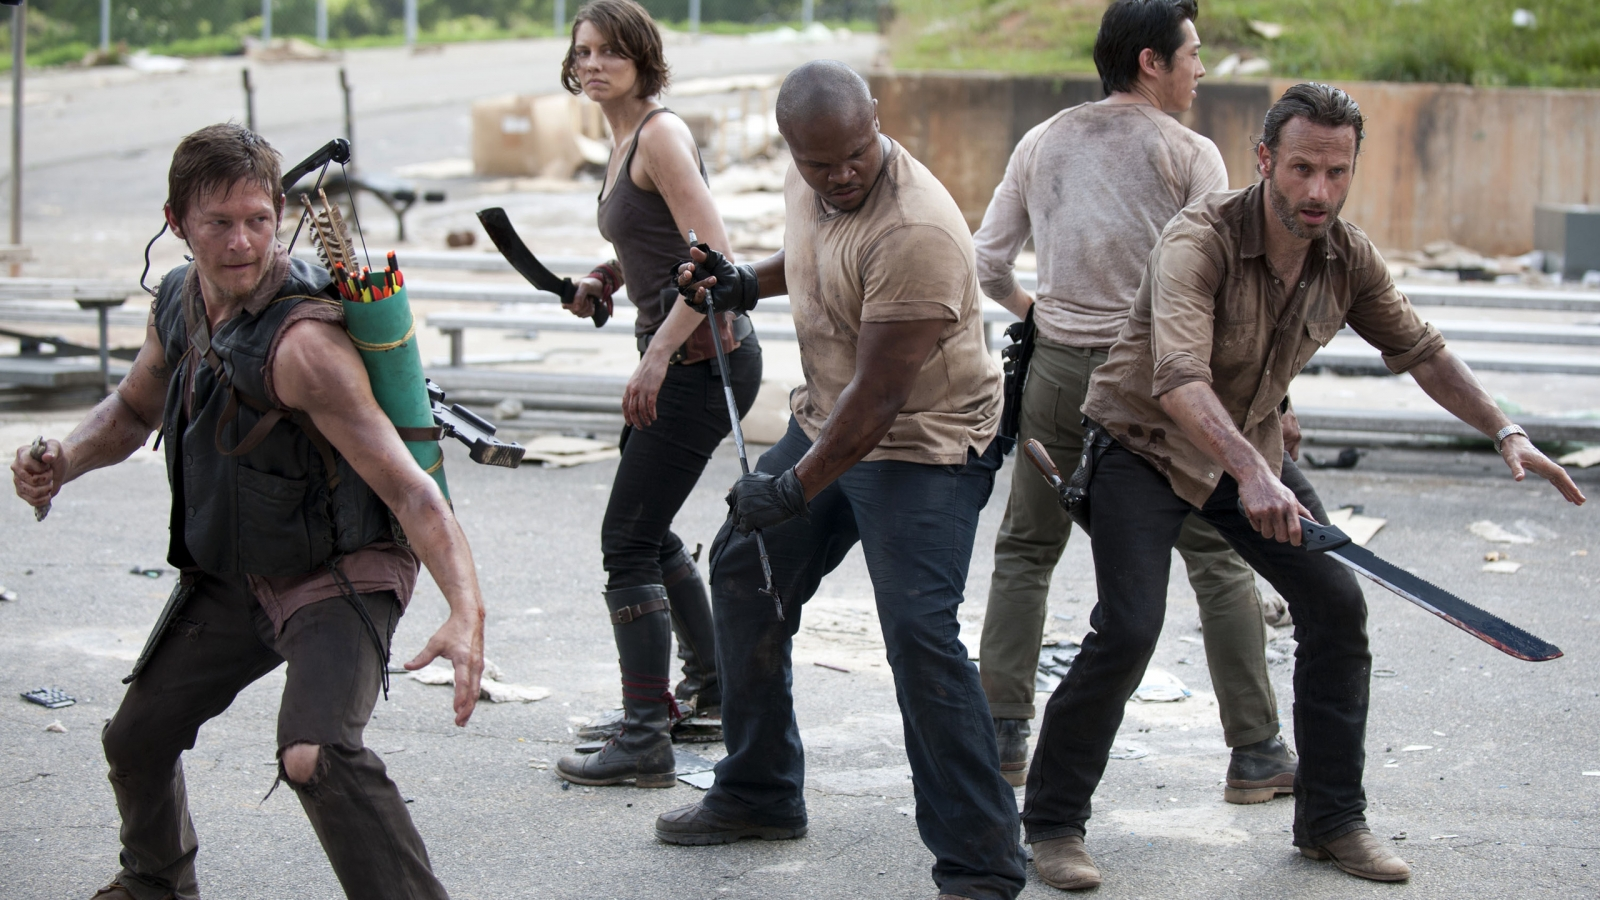 The Walking Dead Cast for 1600 x 900 HDTV resolution